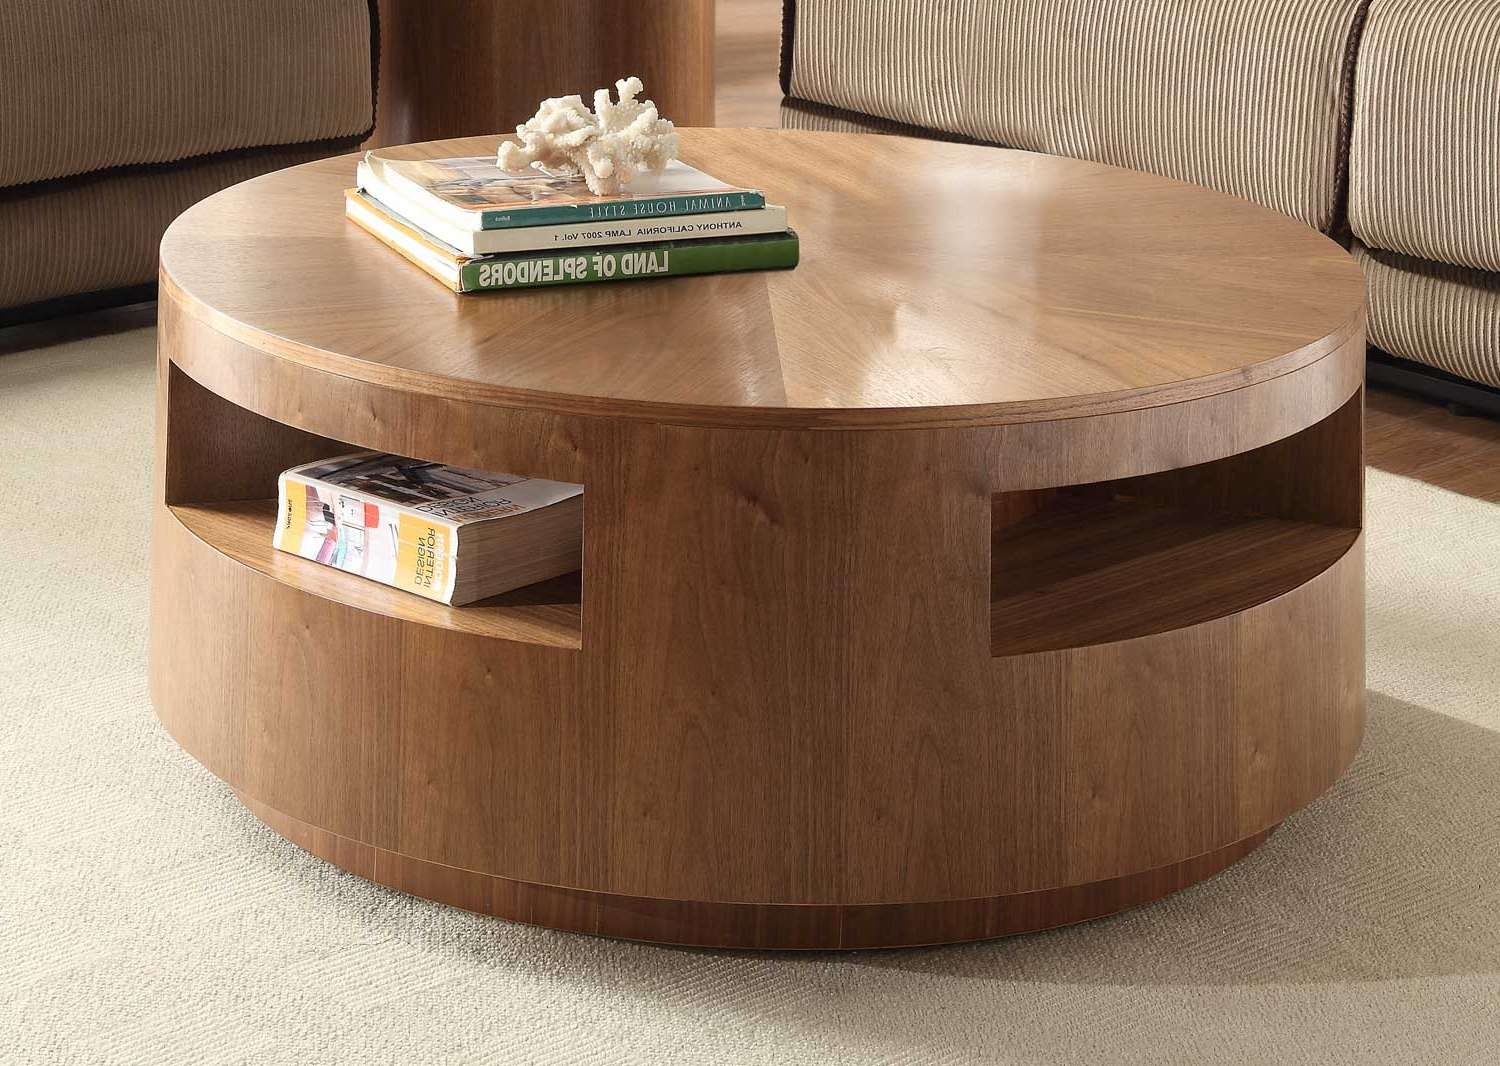 Most Up To Date Round Coffee Table Storages Within The Round Coffee Tables With Storage – The Simple And Compact (View 3 of 20)